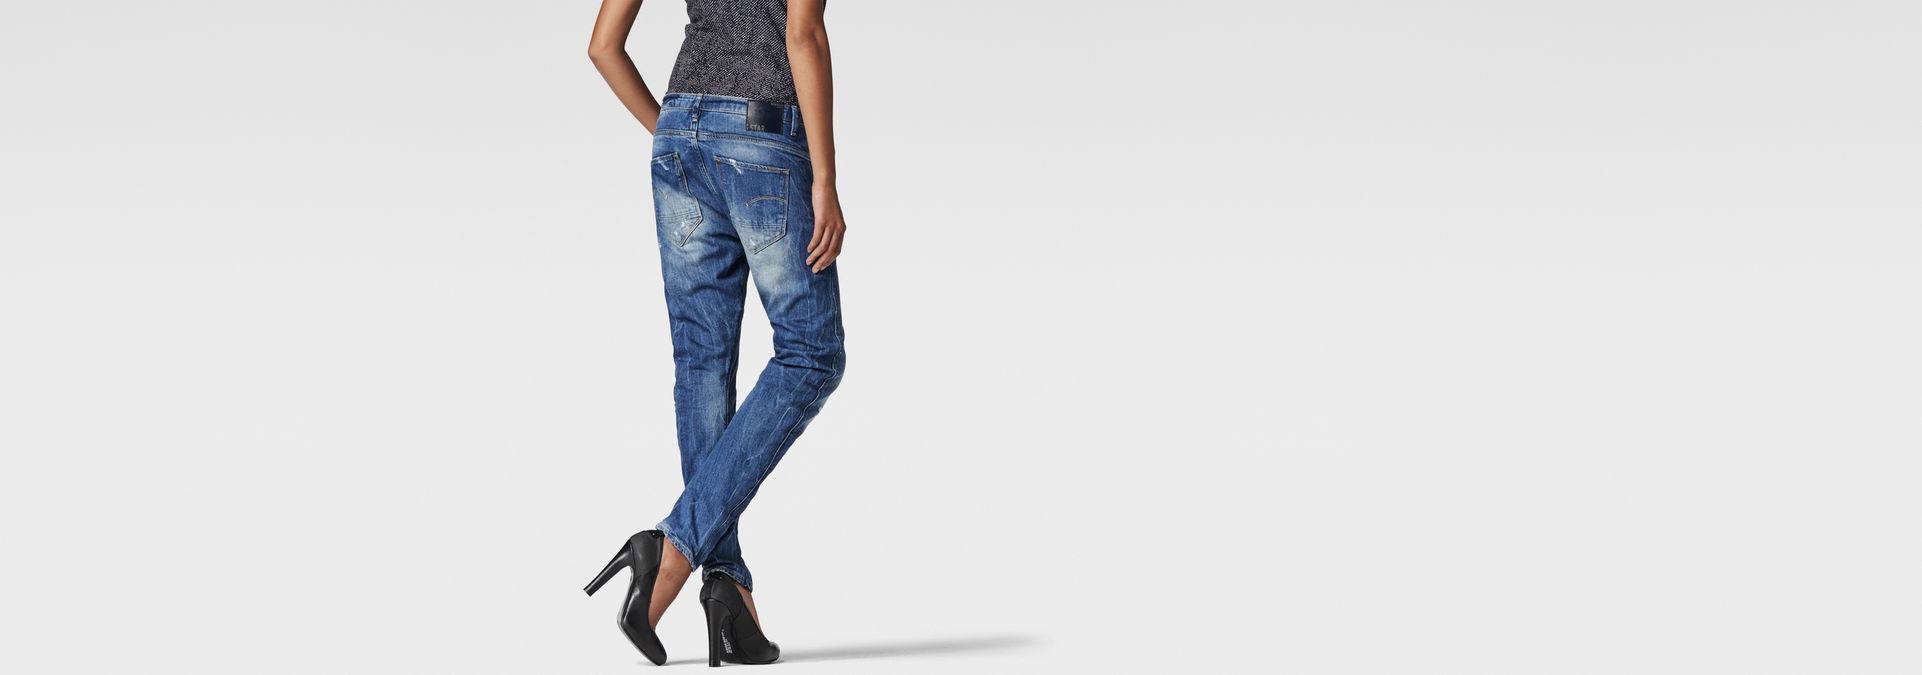 7cd97ab4c05 Arc 3D Tapered Jeans | Medium Aged Destroy | Women | G-Star RAW®